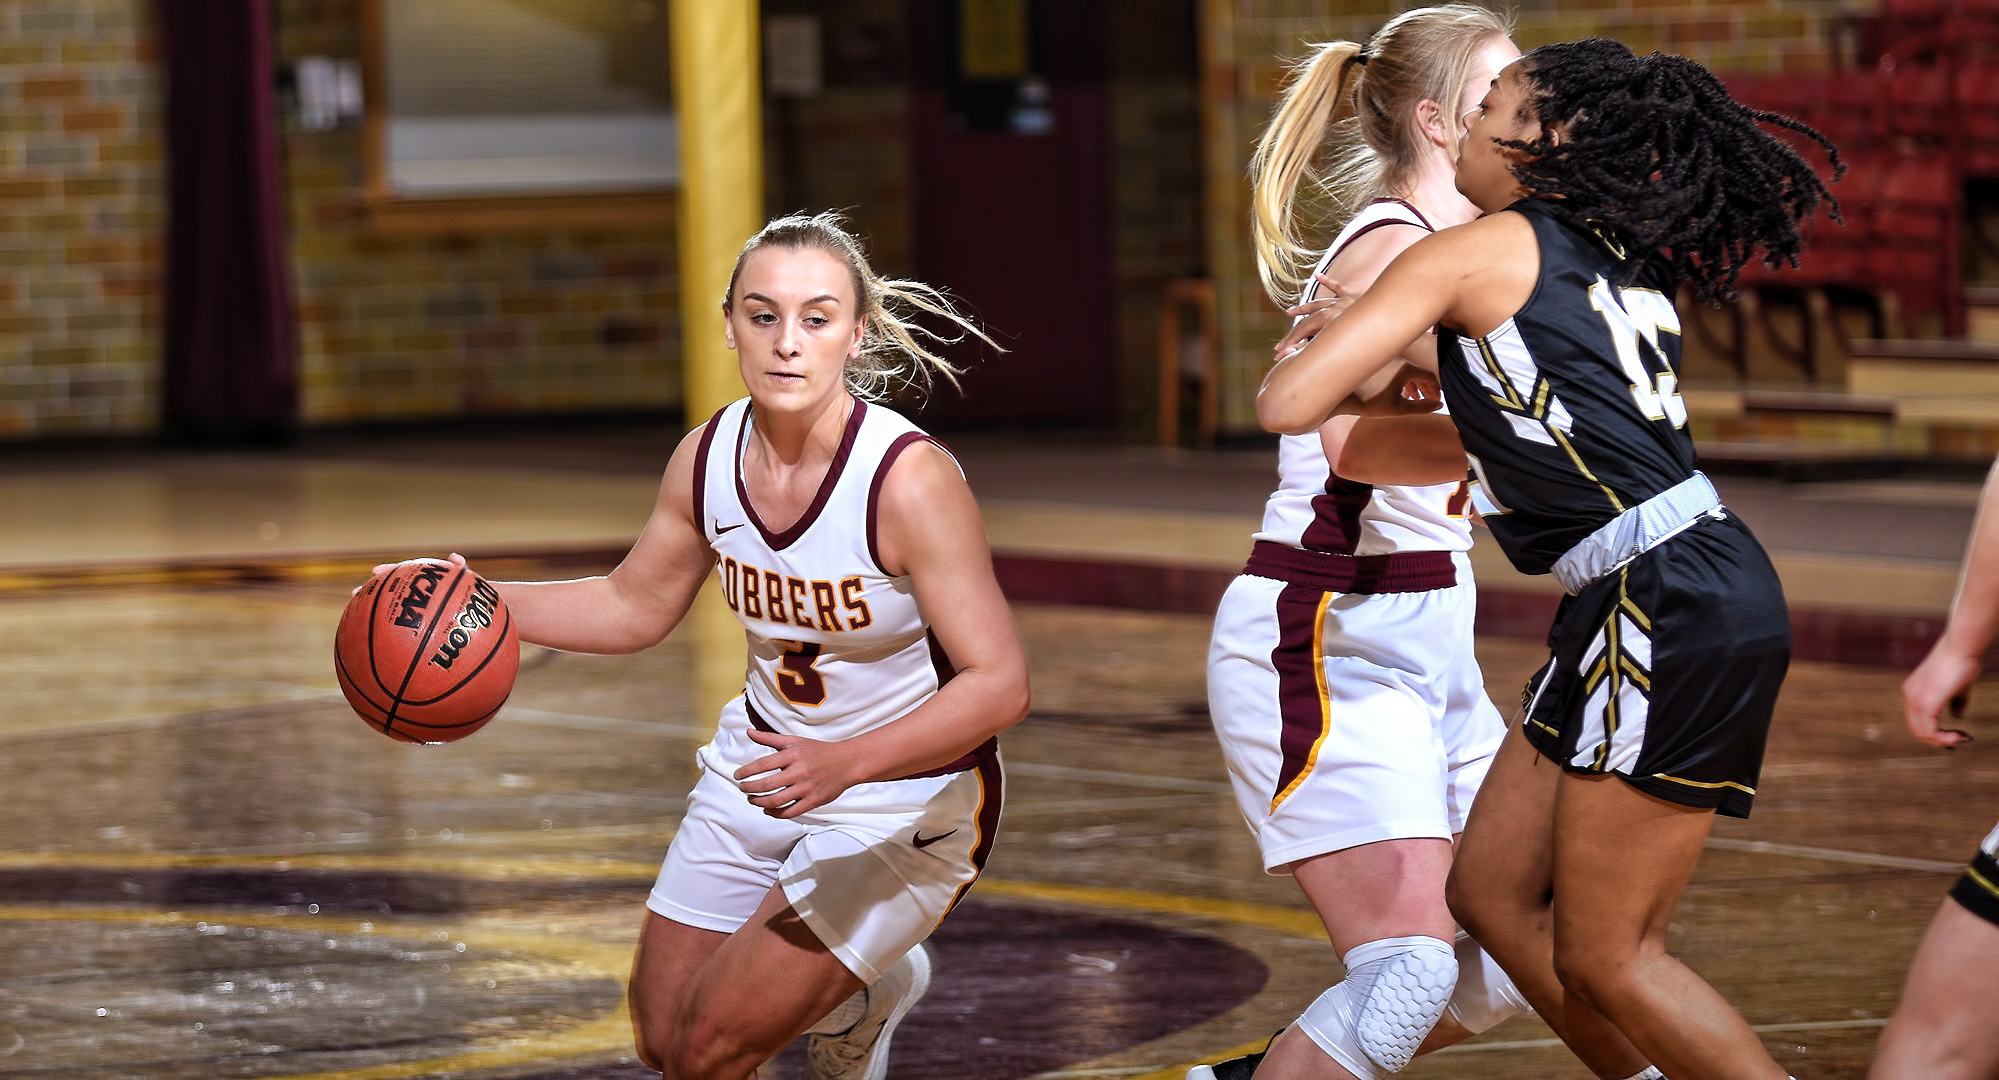 Sophomore Autumn Thompson cuts around a ball screen on the way to the basket in the first half of the Cobbers' OT win over St. Olaf. Thompson finished with a team-high 20 points.